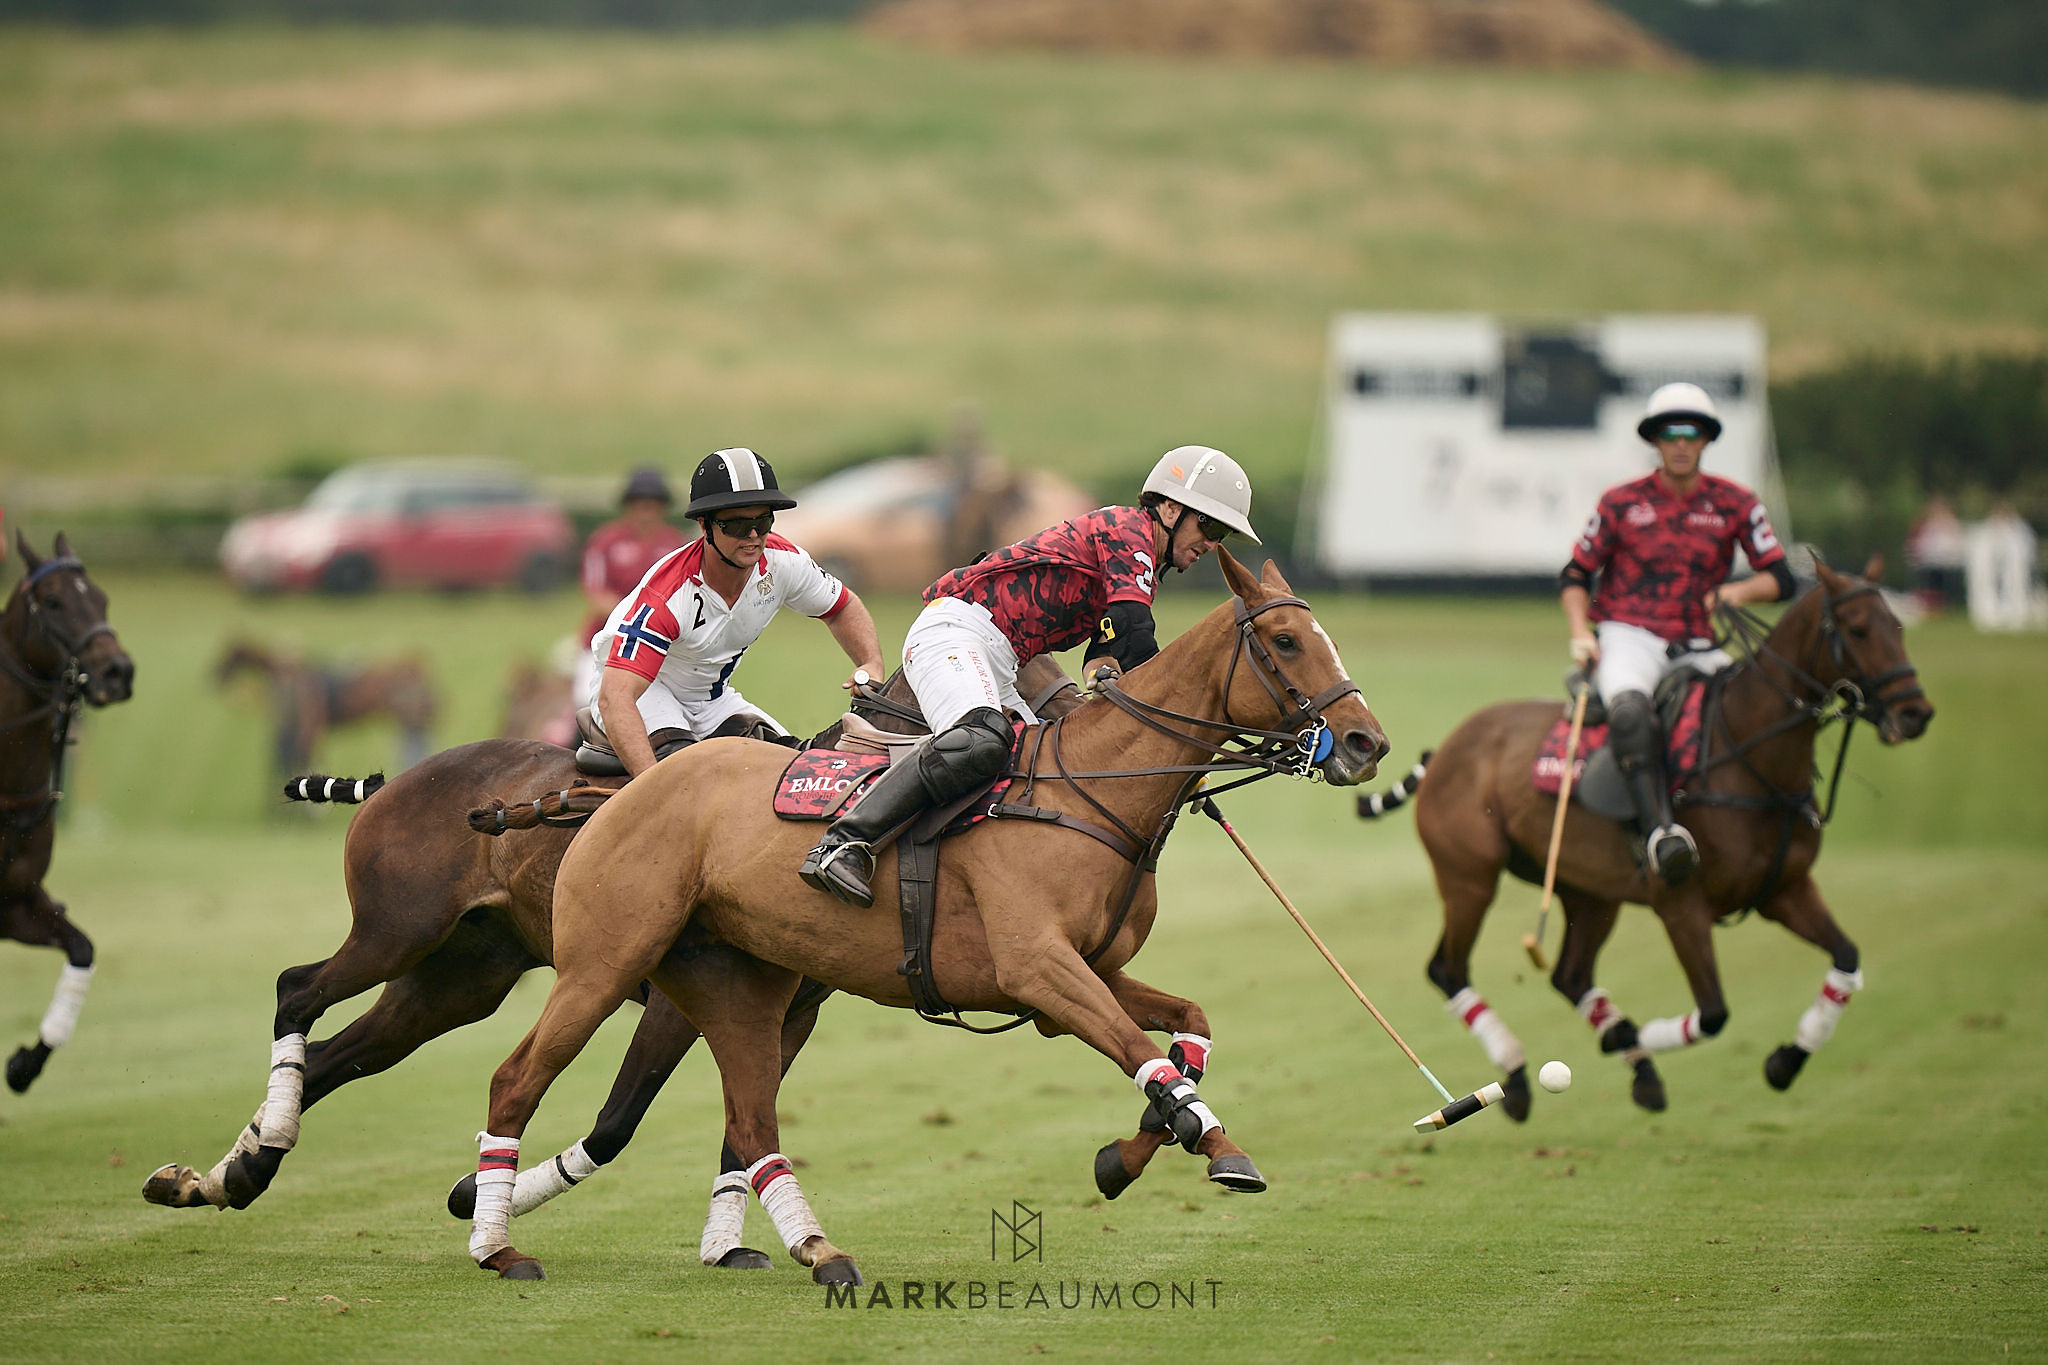 British Open Polo Championship Gold Cup Day 1